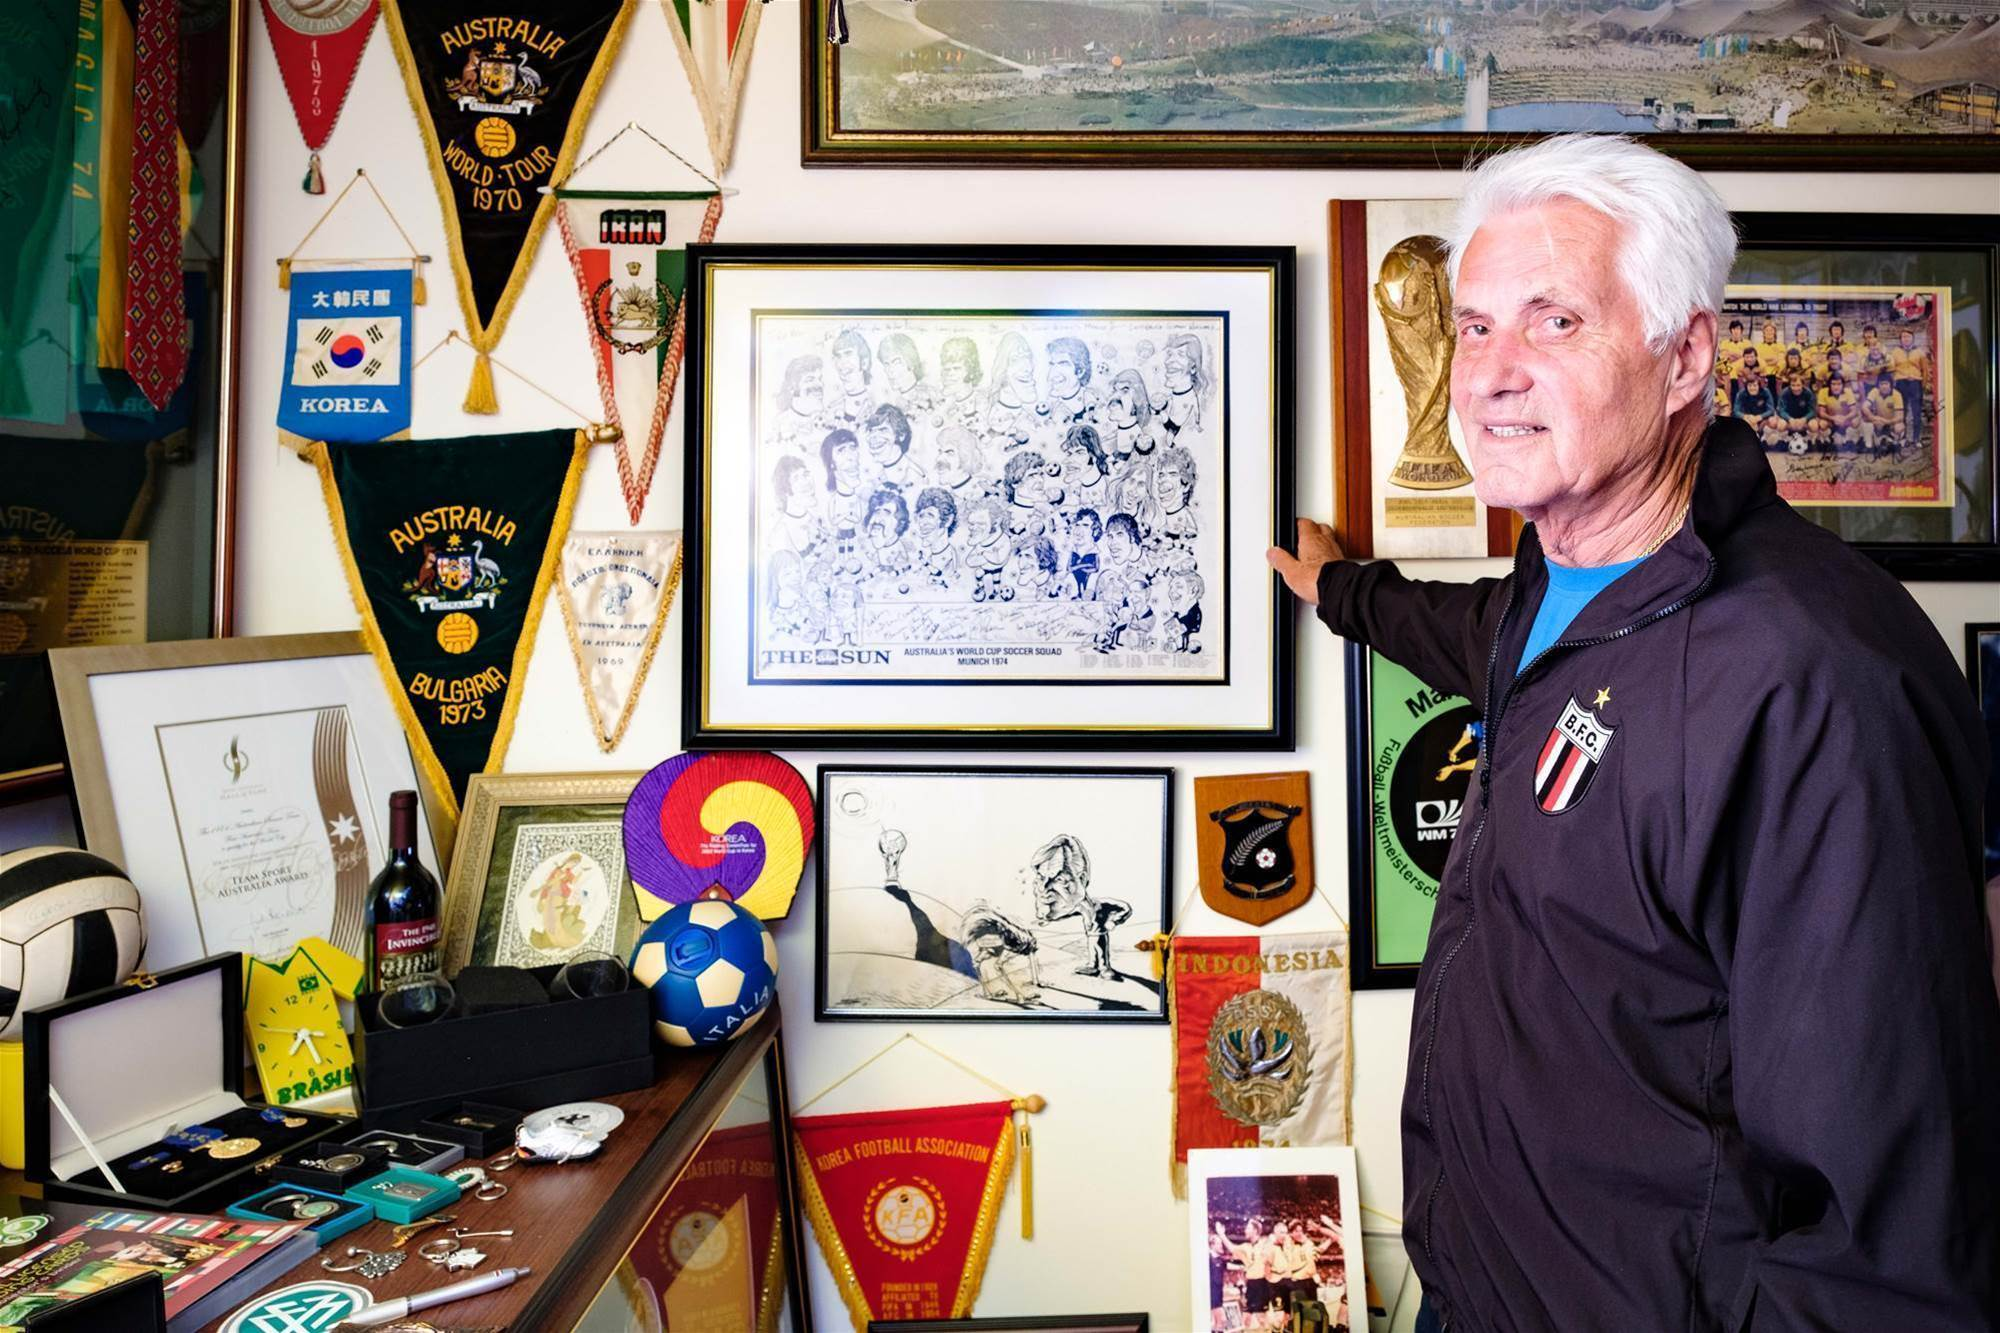 Does Rale Rasic house the best private collection of football memorabilia in Australia?